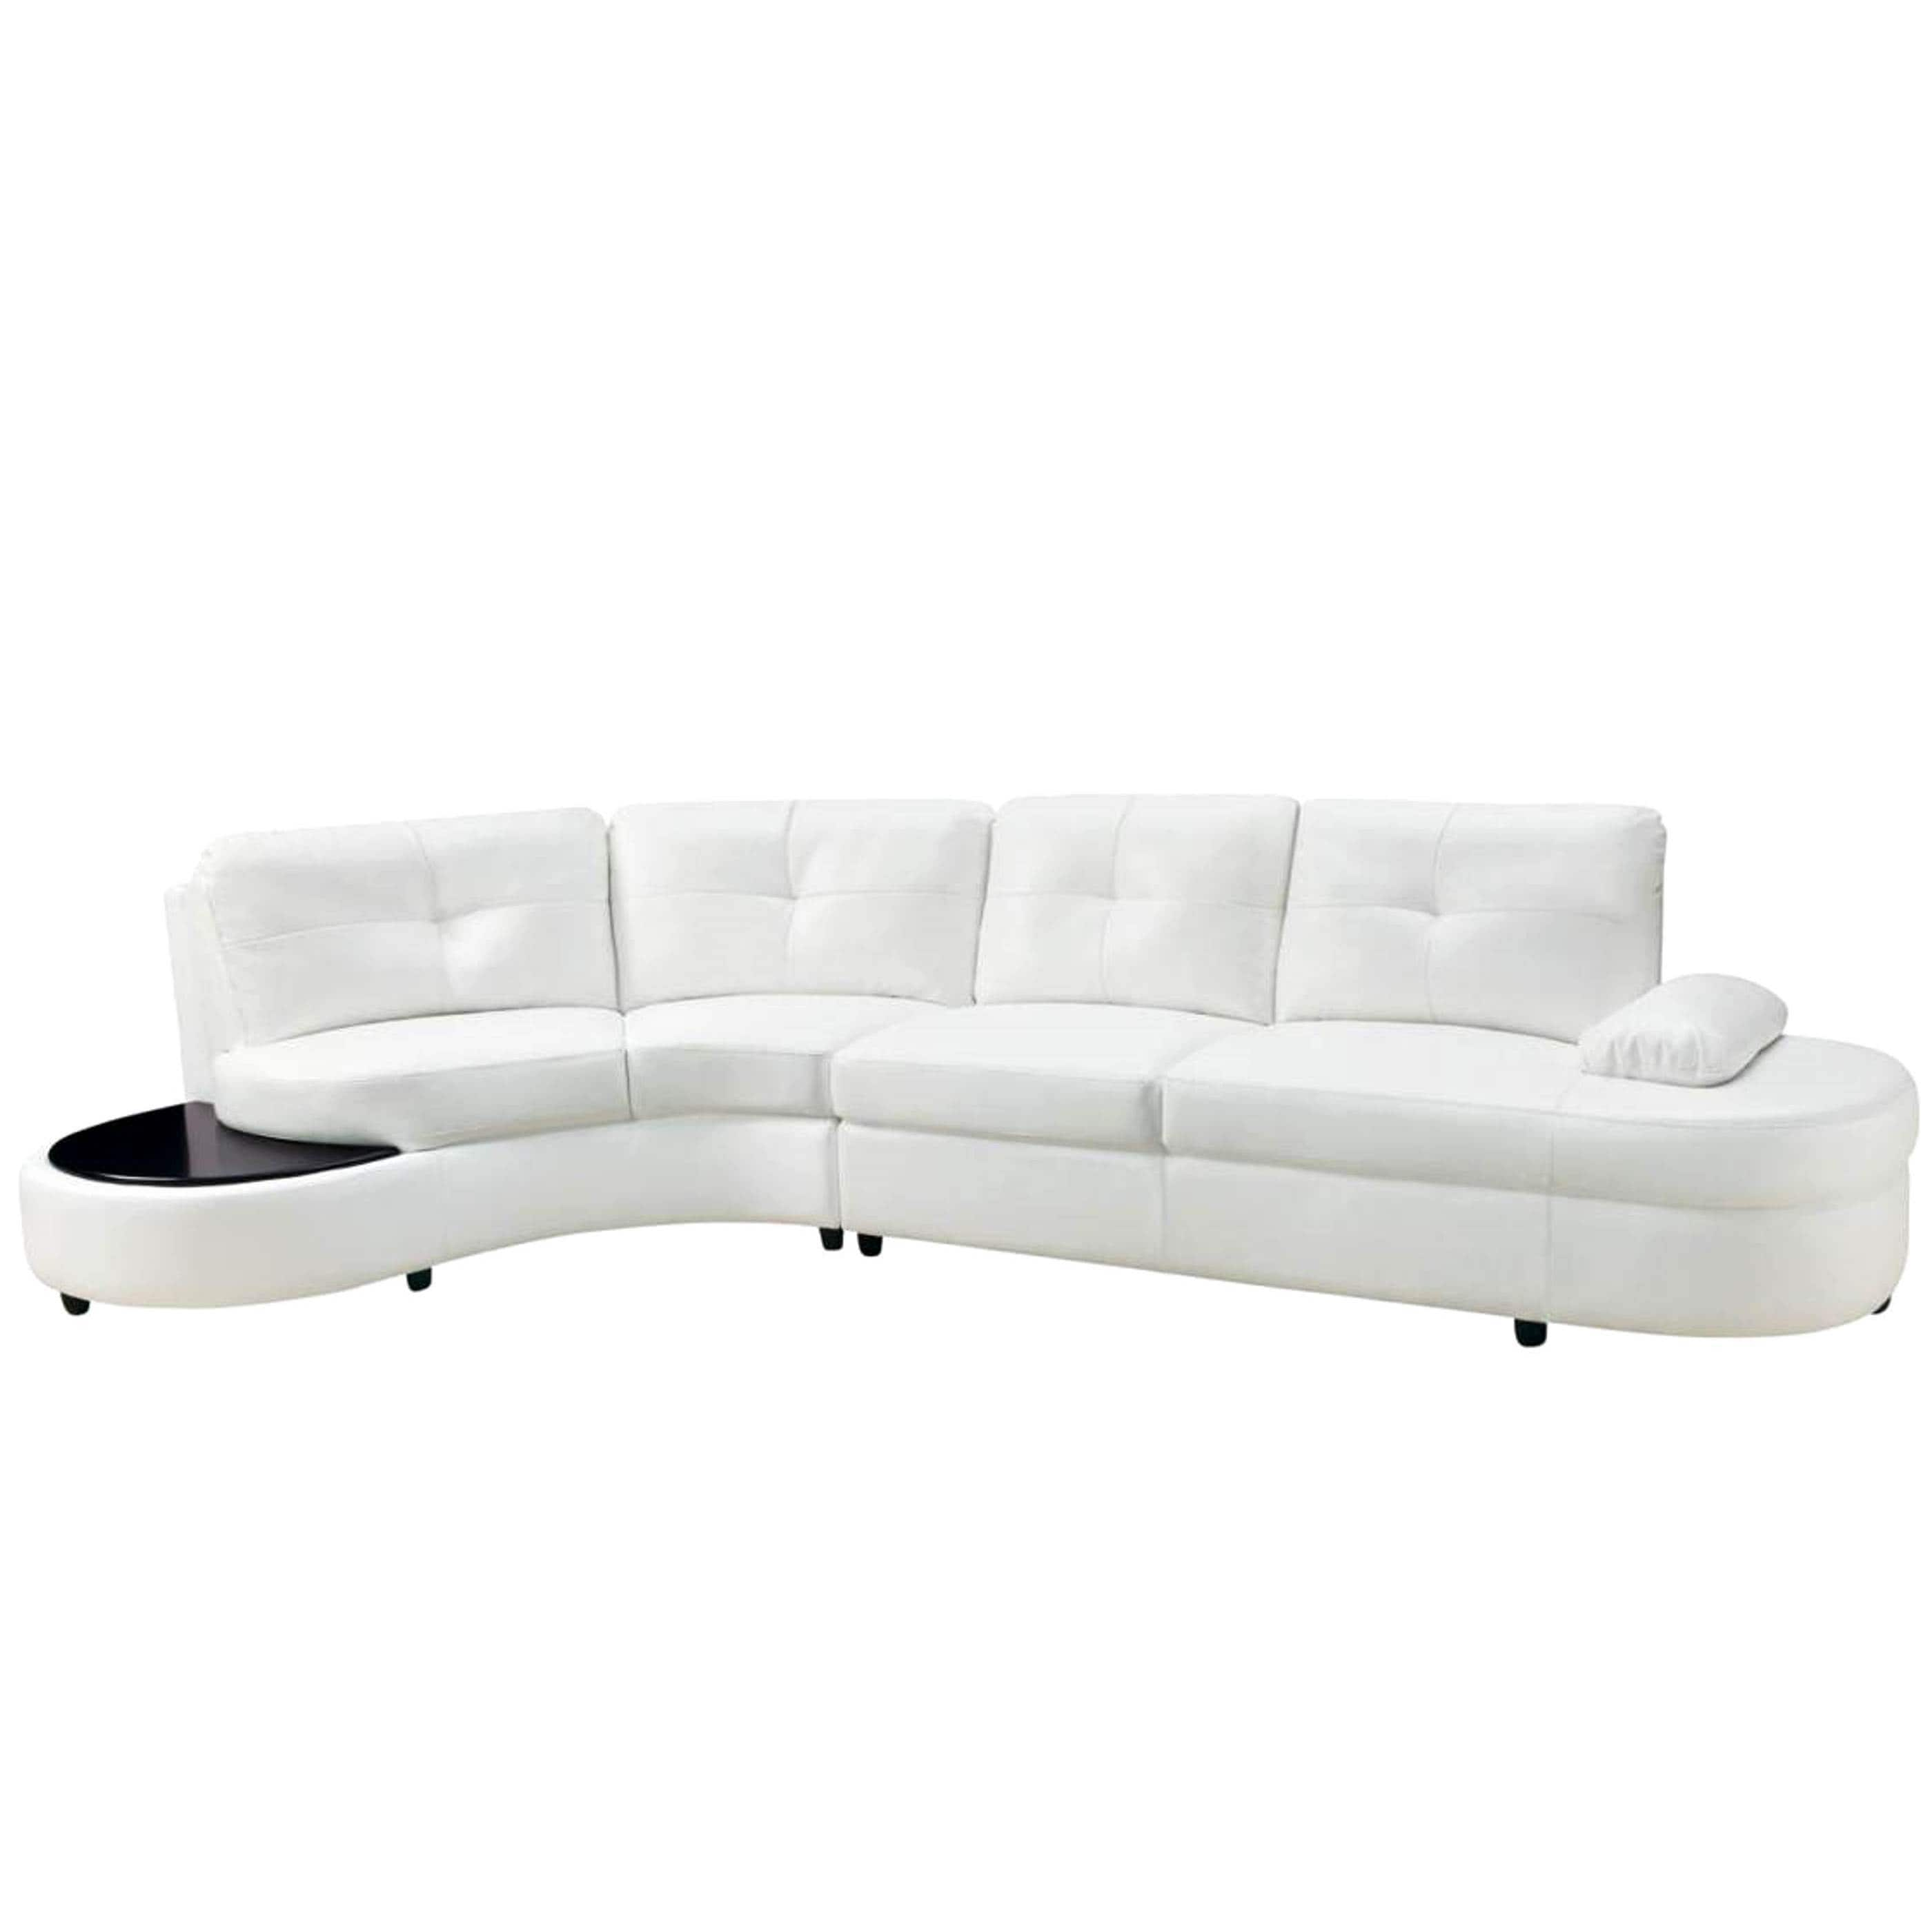 Modern Style Curved Sectional Sofa with Builtin Wooden Top Ottoman